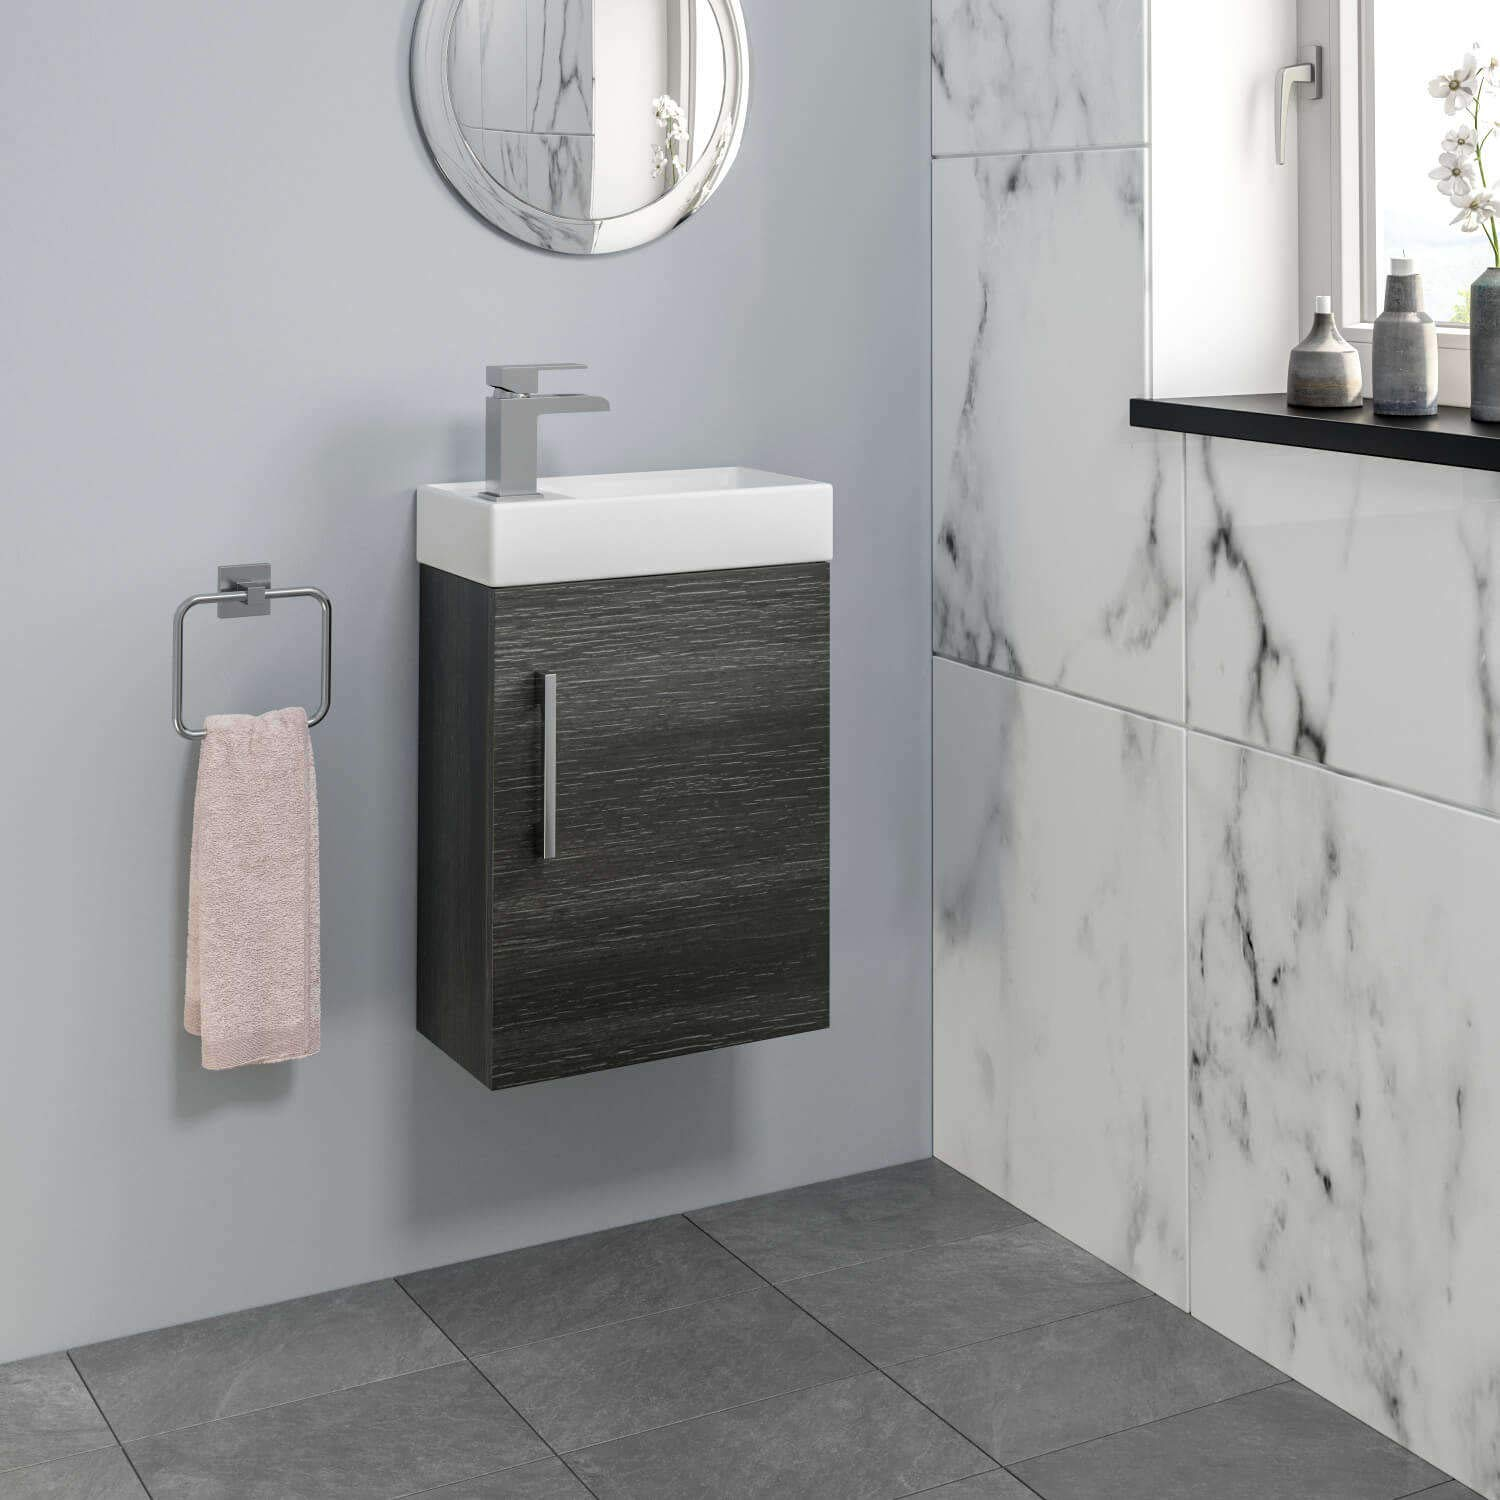 Worcester Bosch Modern Bathroom Basin Sink Vanity Unit Wall Hung 1 Tap Hole 400mm Charcoal Grey